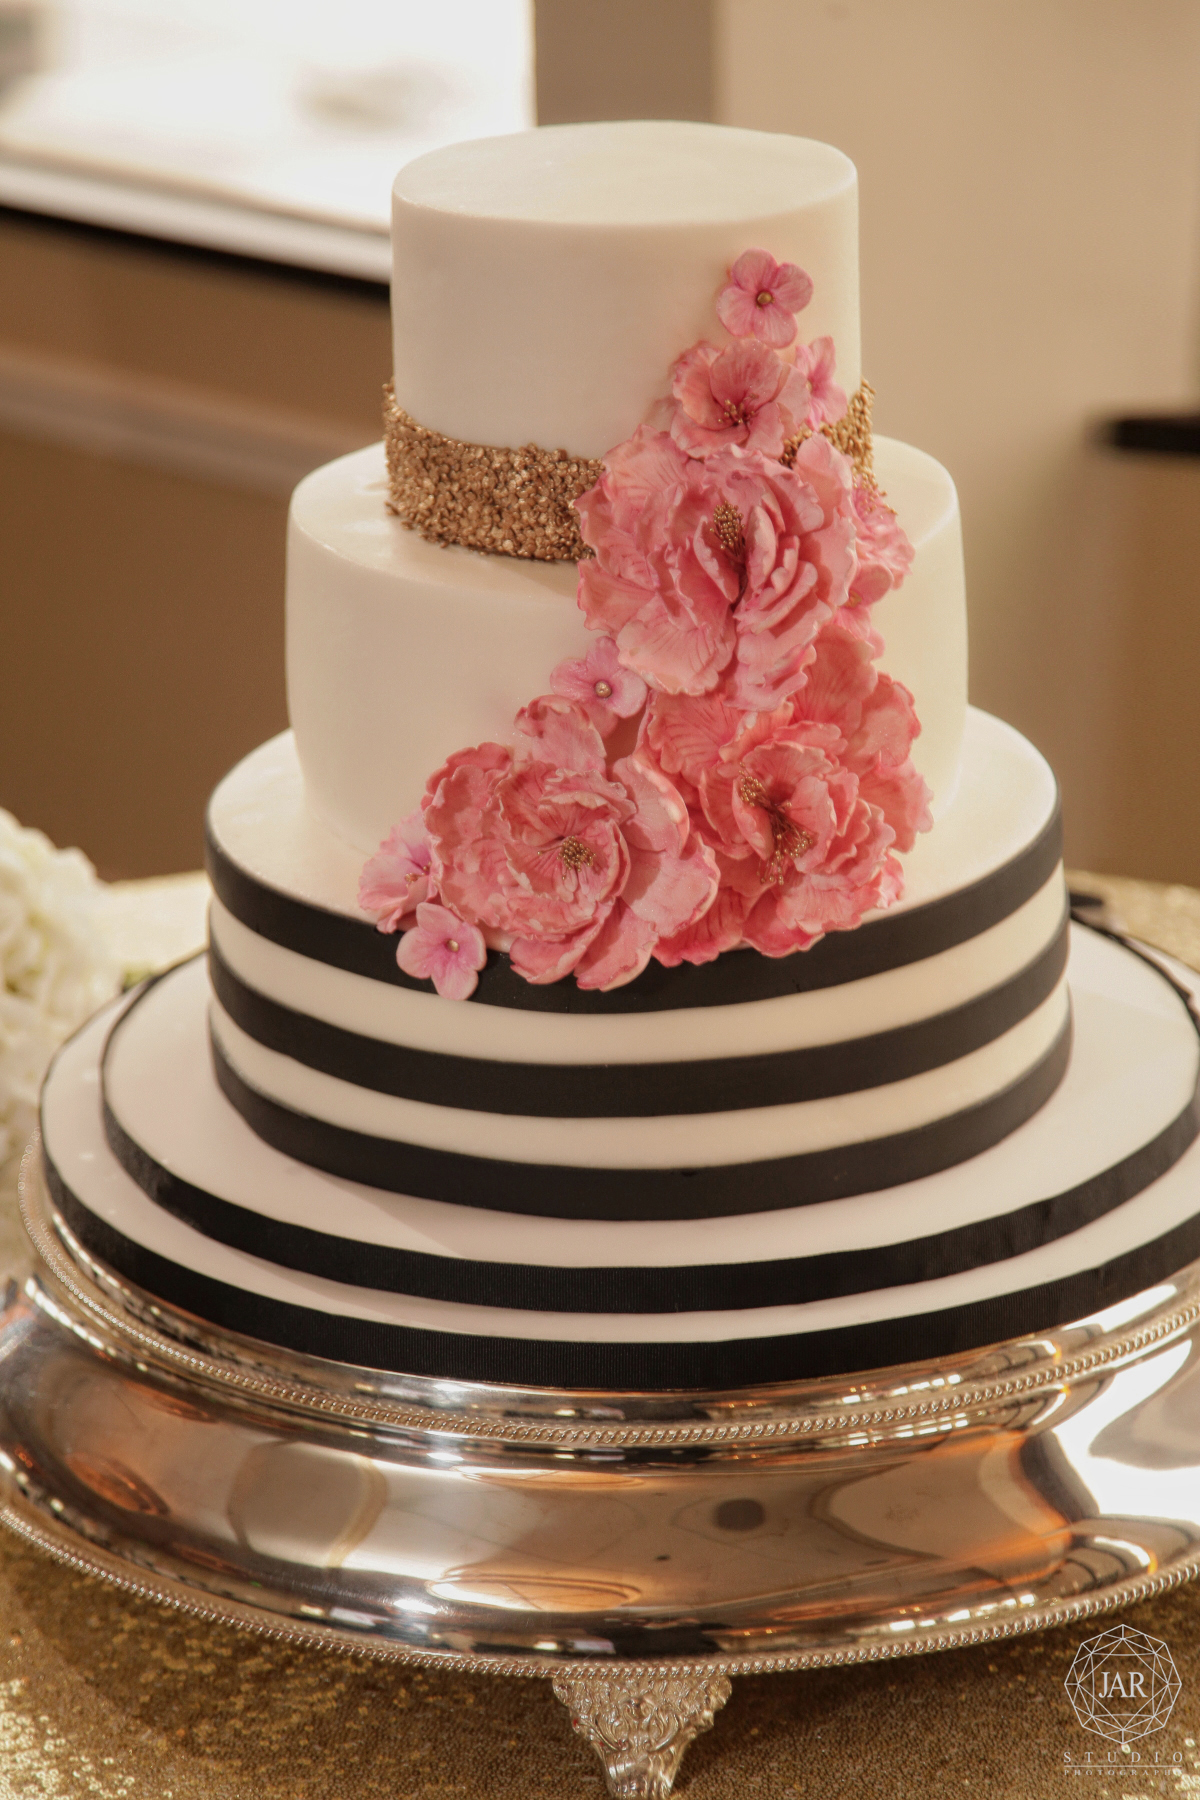 52-wedding-cake-citrus-club-jarstudio-photography-orlando.JPG